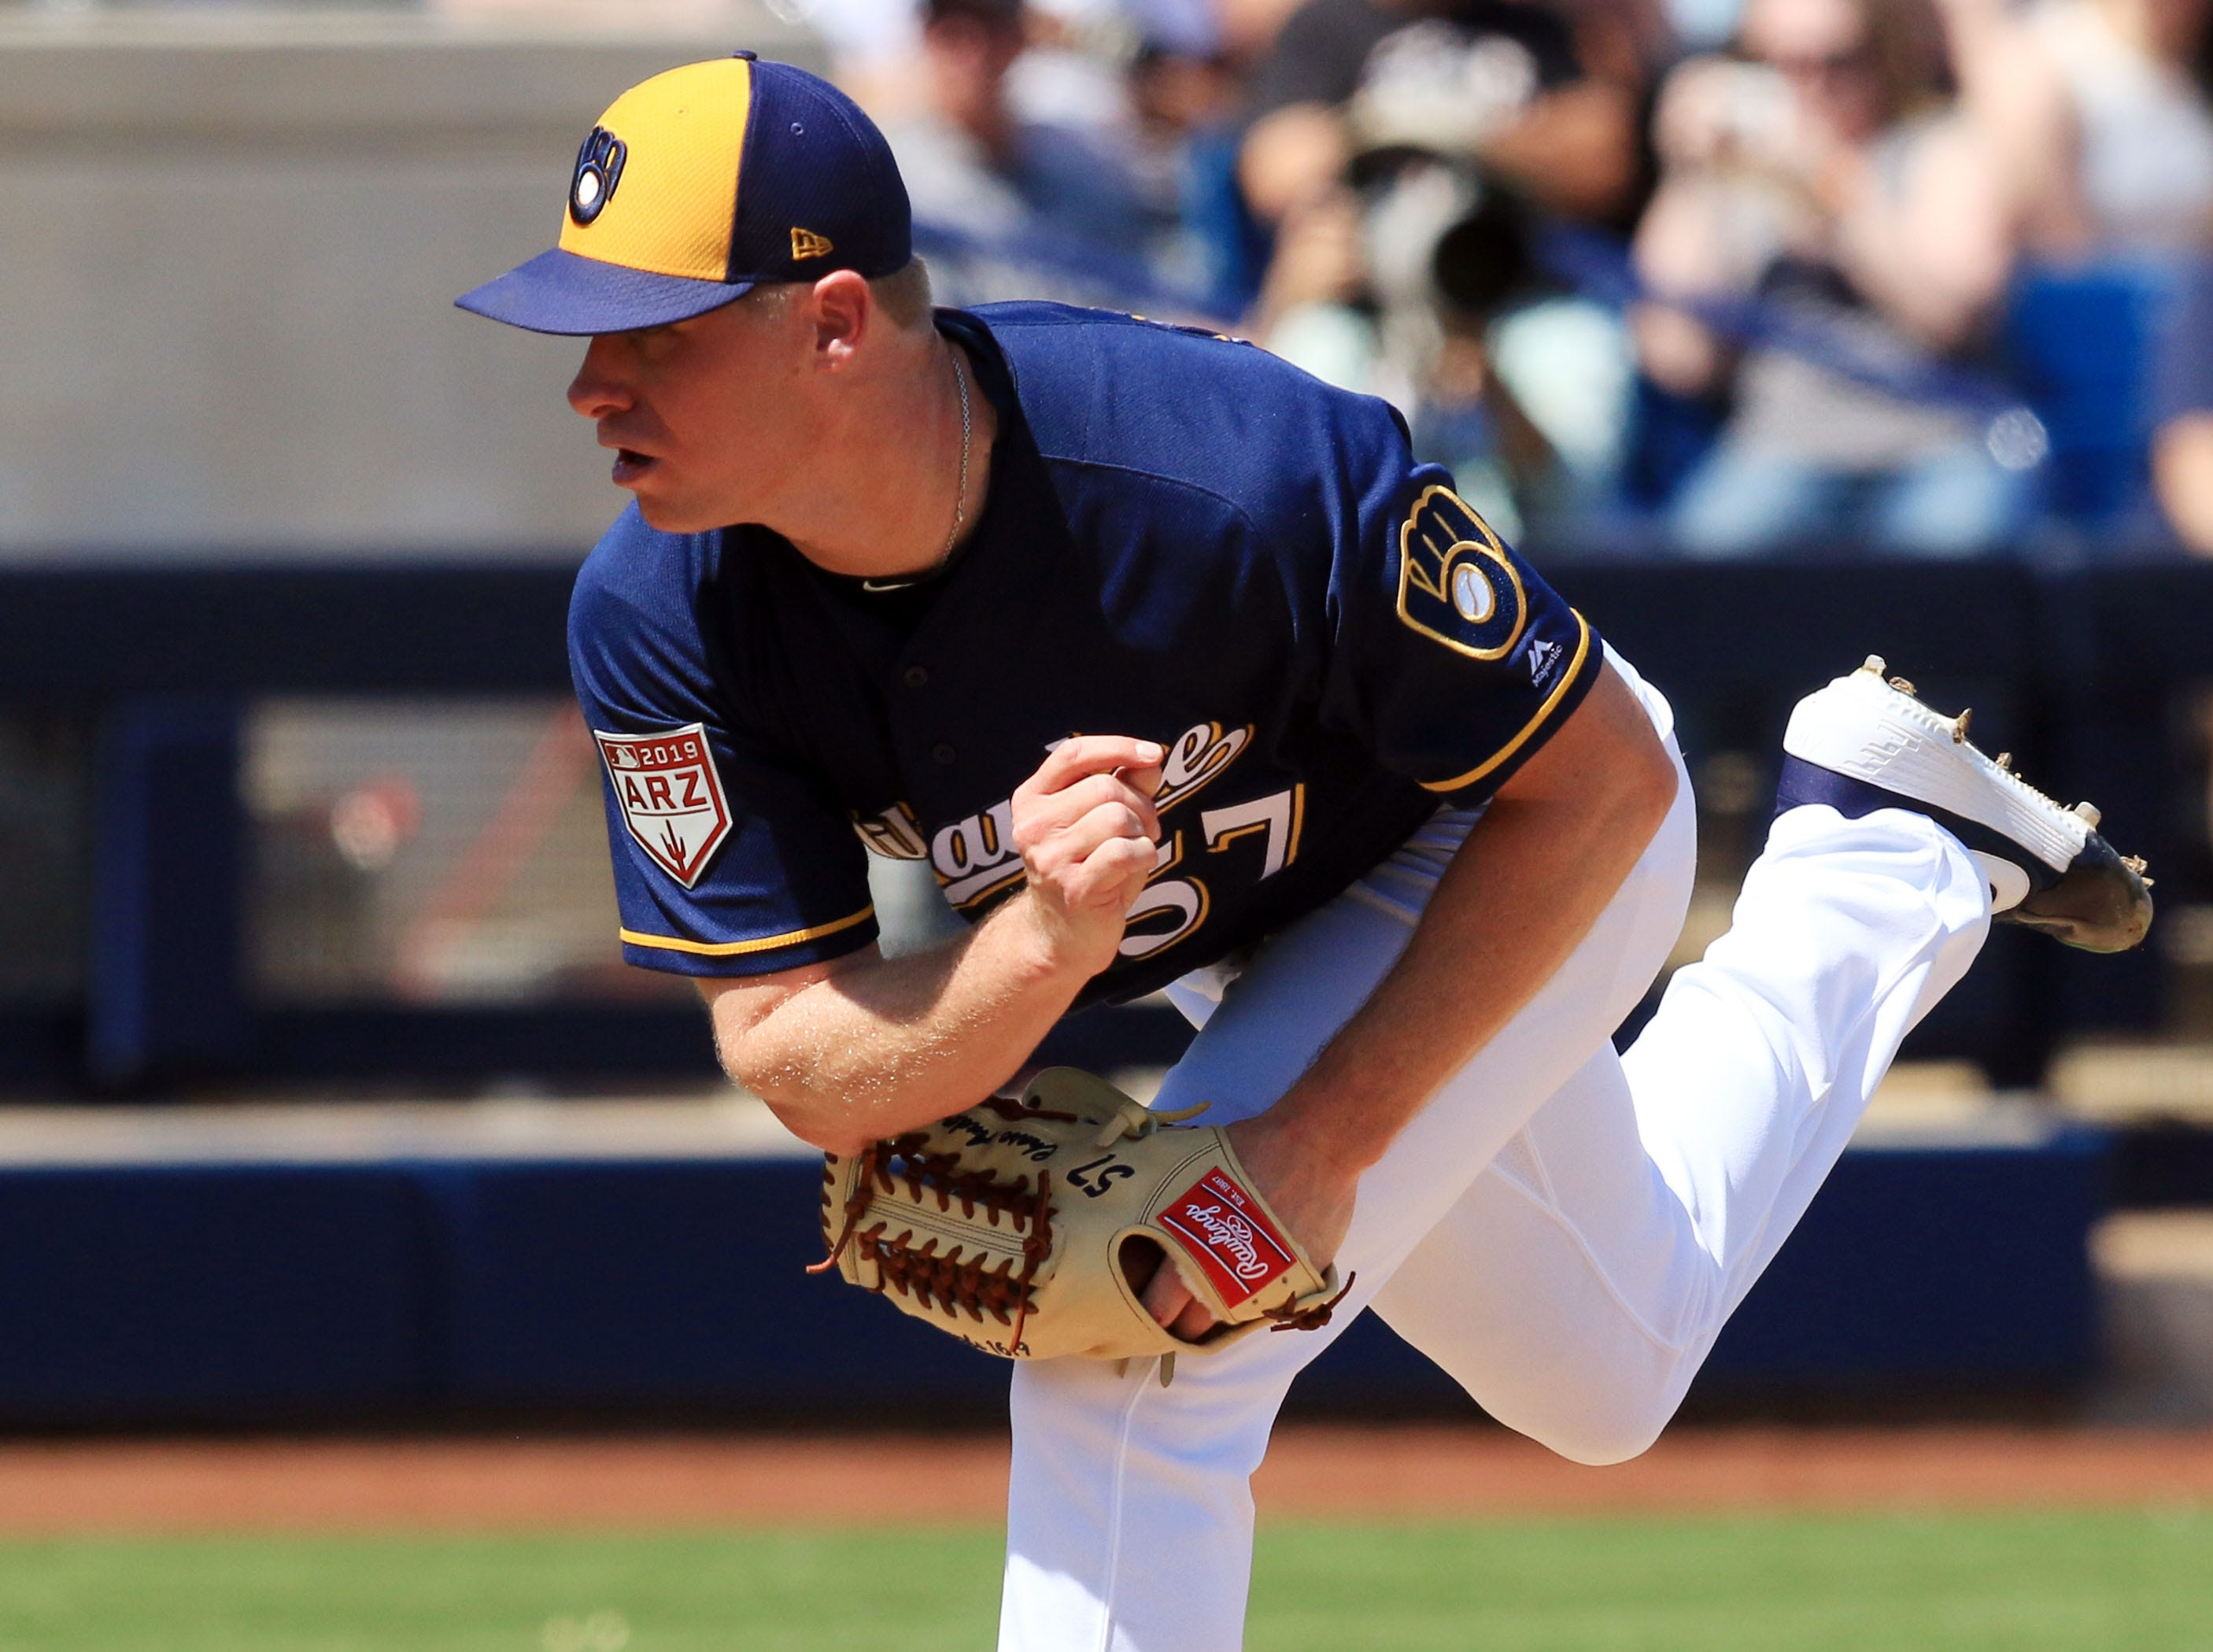 Brewers Chase Anderson pitched well after returning to his former delivery on Tuesday.